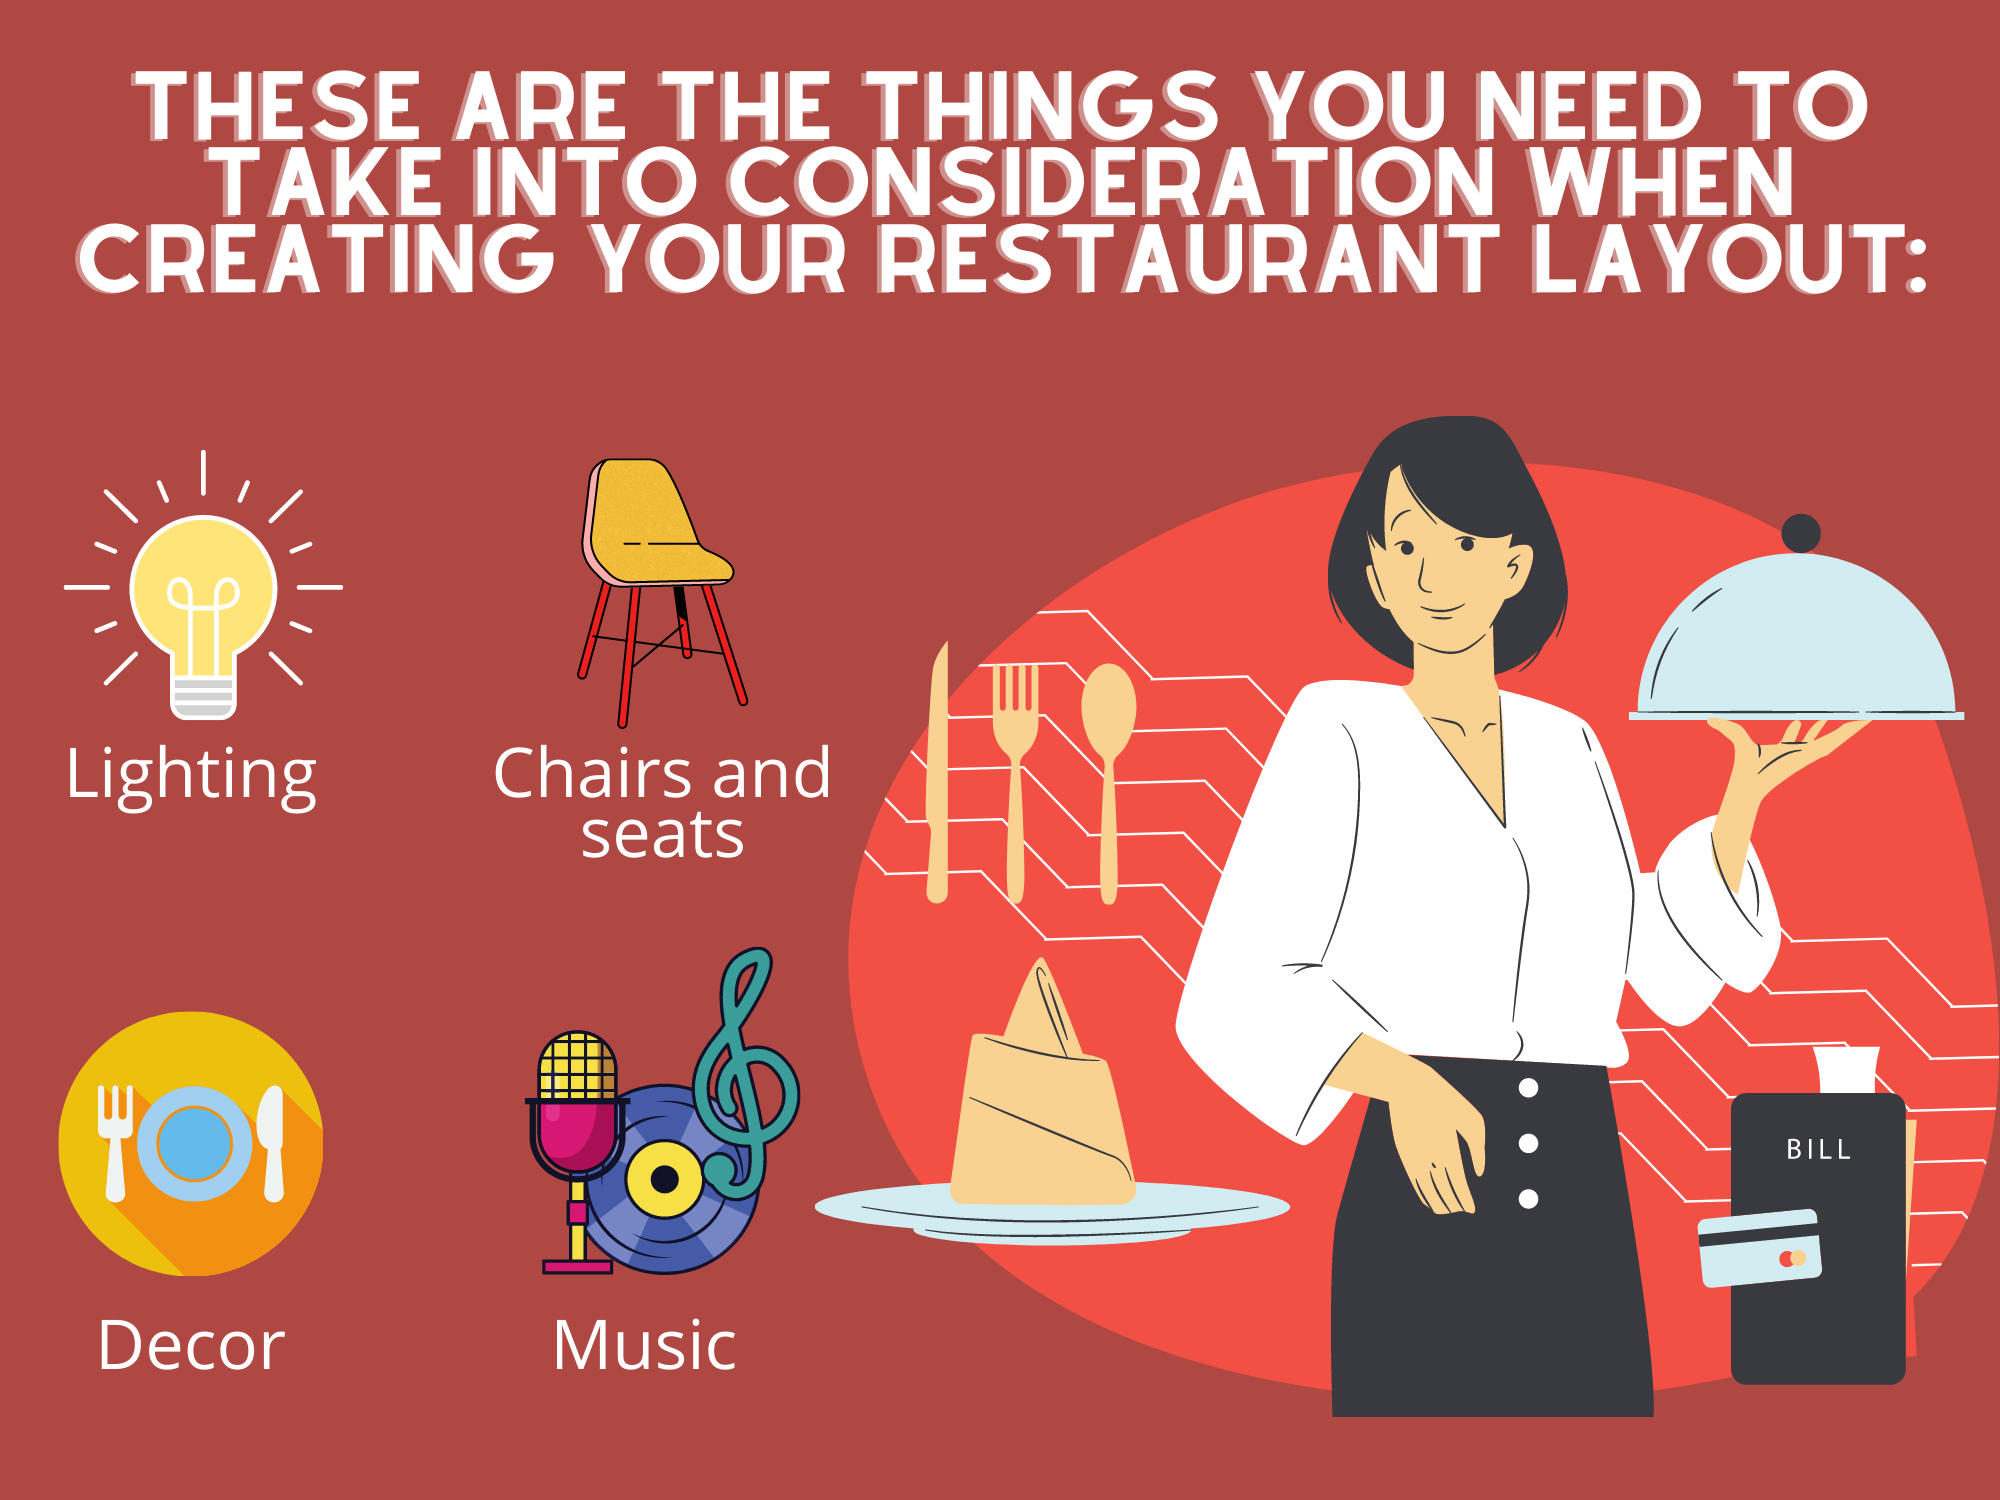 These-are-the-things-you-need-to-take-into-consideration-when-creating-your-restaurant-layout